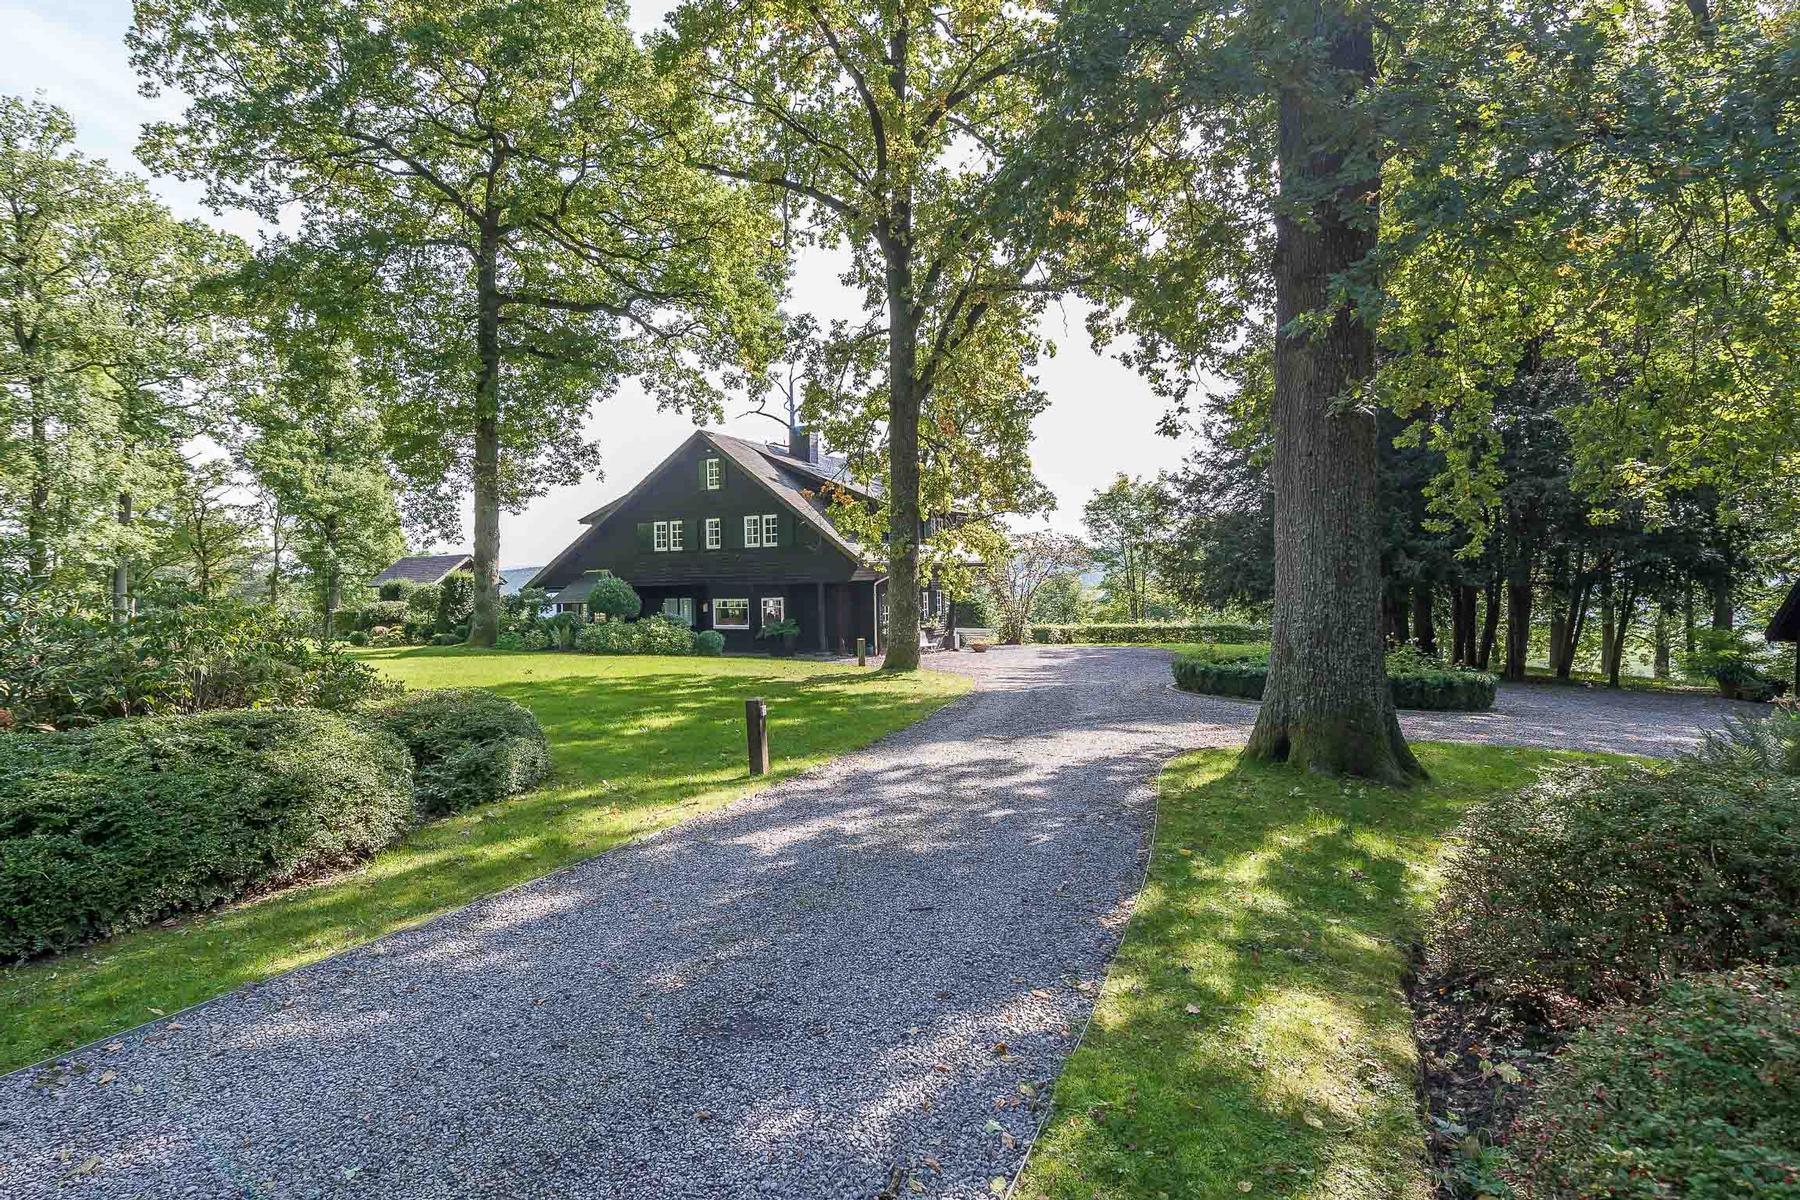 Farm / Ranch / Plantation for Sale at Theux I La Reid Other Belgium, Other Areas In Belgium, 4180 Belgium